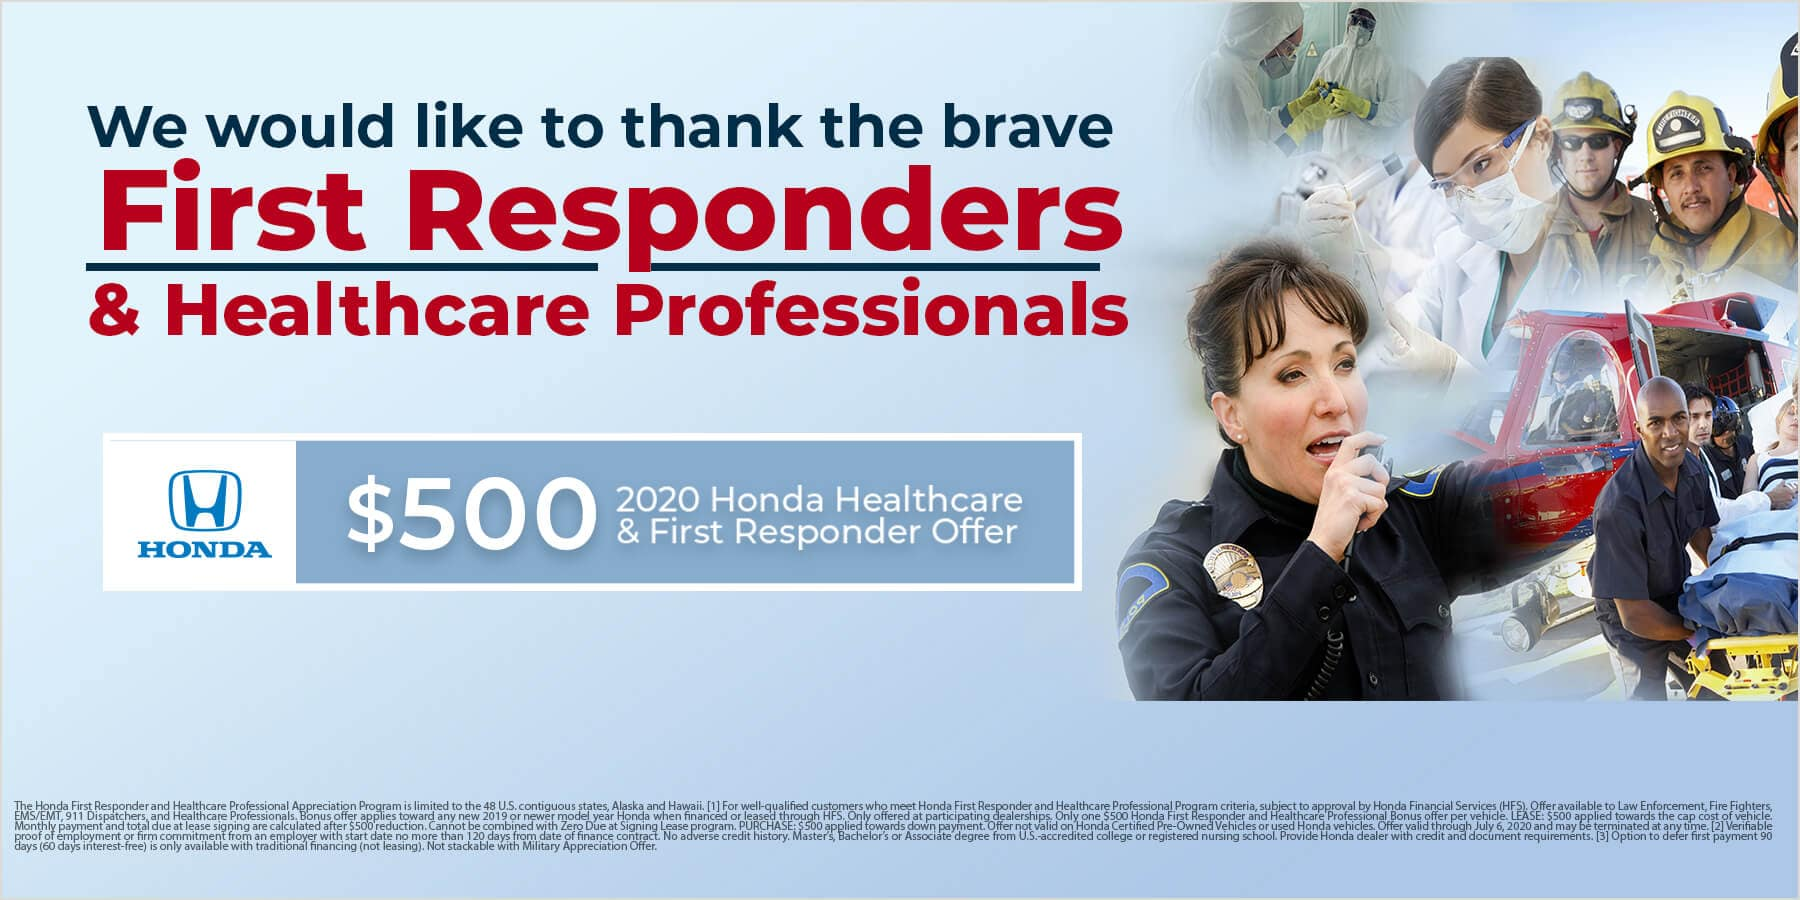 Honda First Responder $500 Offer